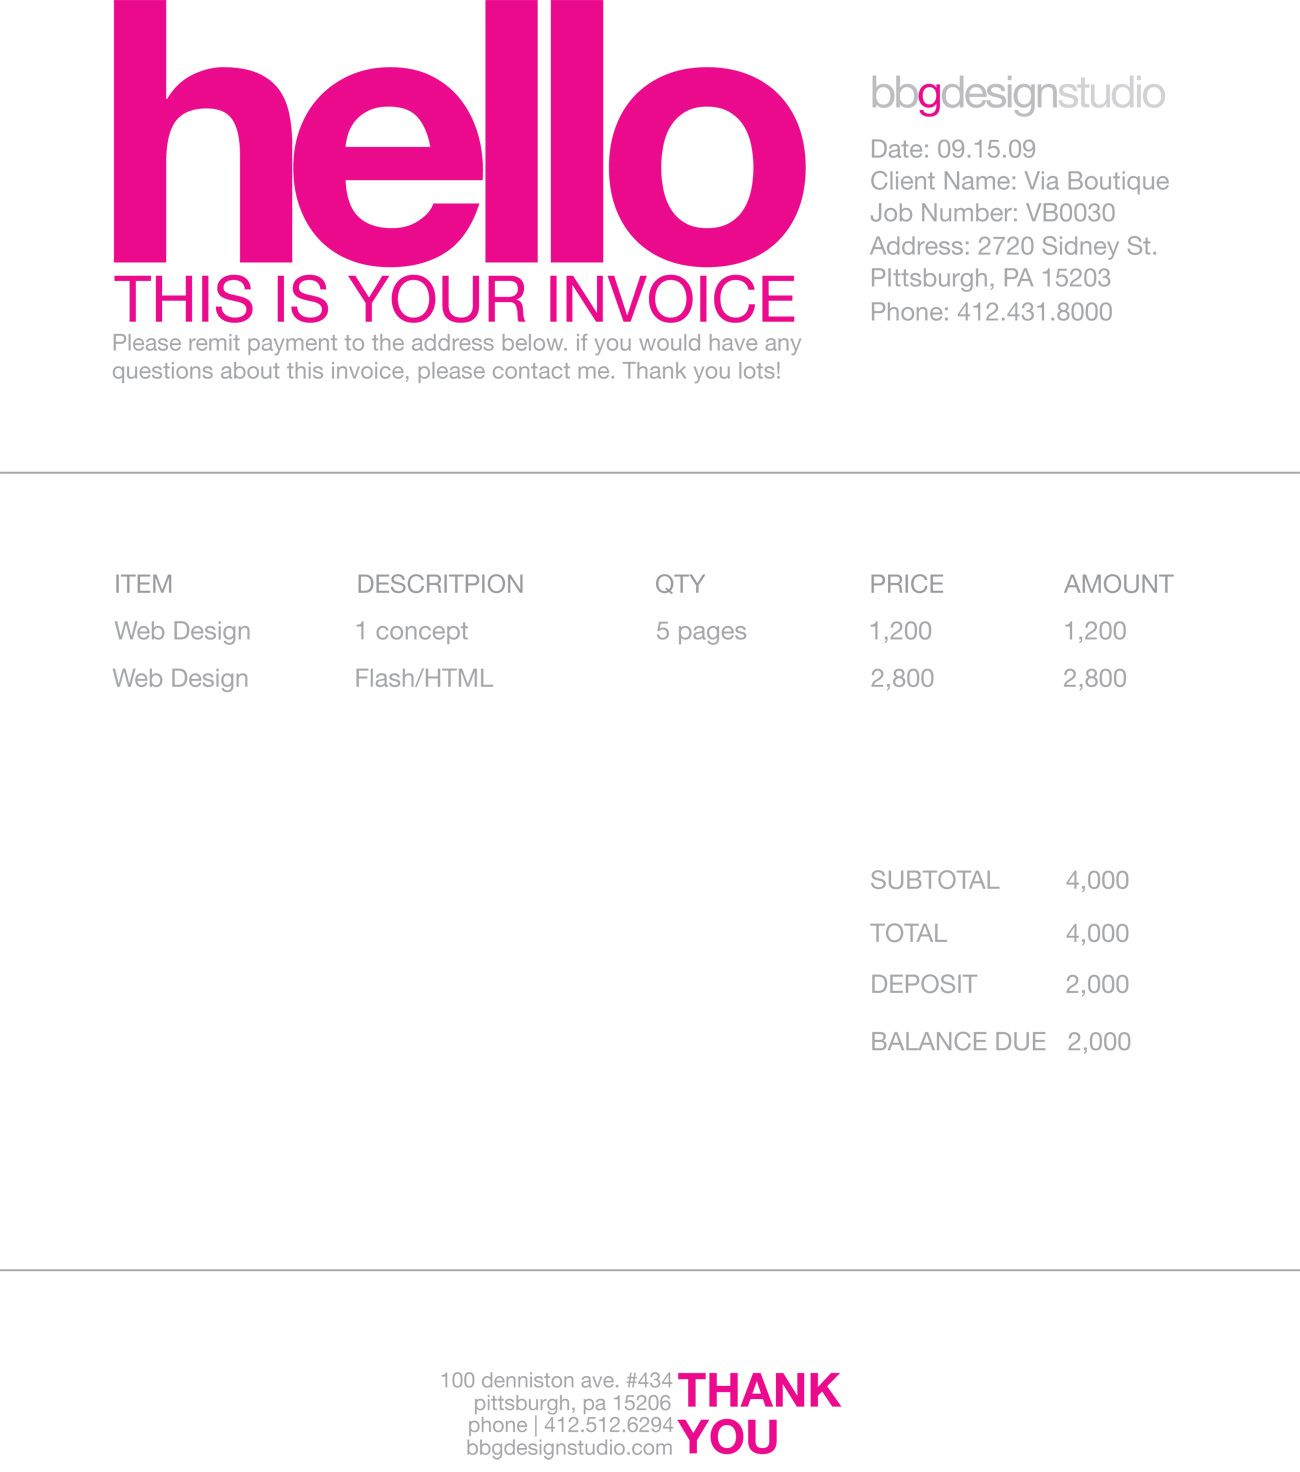 Laceychabertus  Unique  Images About Invoice Design On Pinterest With Marvelous Australian Tax Invoice Besides Download Free Invoice Template For Word Furthermore Invoice Billing Software Free Download Full Version With Attractive Invoice Generation Software Also What Is An Invoices In Addition Automatic Invoice And Sticker Price Vs Invoice Price As Well As Tax Invoices Requirements Additionally Example Invoice Template Word From Pinterestcom With Laceychabertus  Marvelous  Images About Invoice Design On Pinterest With Attractive Australian Tax Invoice Besides Download Free Invoice Template For Word Furthermore Invoice Billing Software Free Download Full Version And Unique Invoice Generation Software Also What Is An Invoices In Addition Automatic Invoice From Pinterestcom